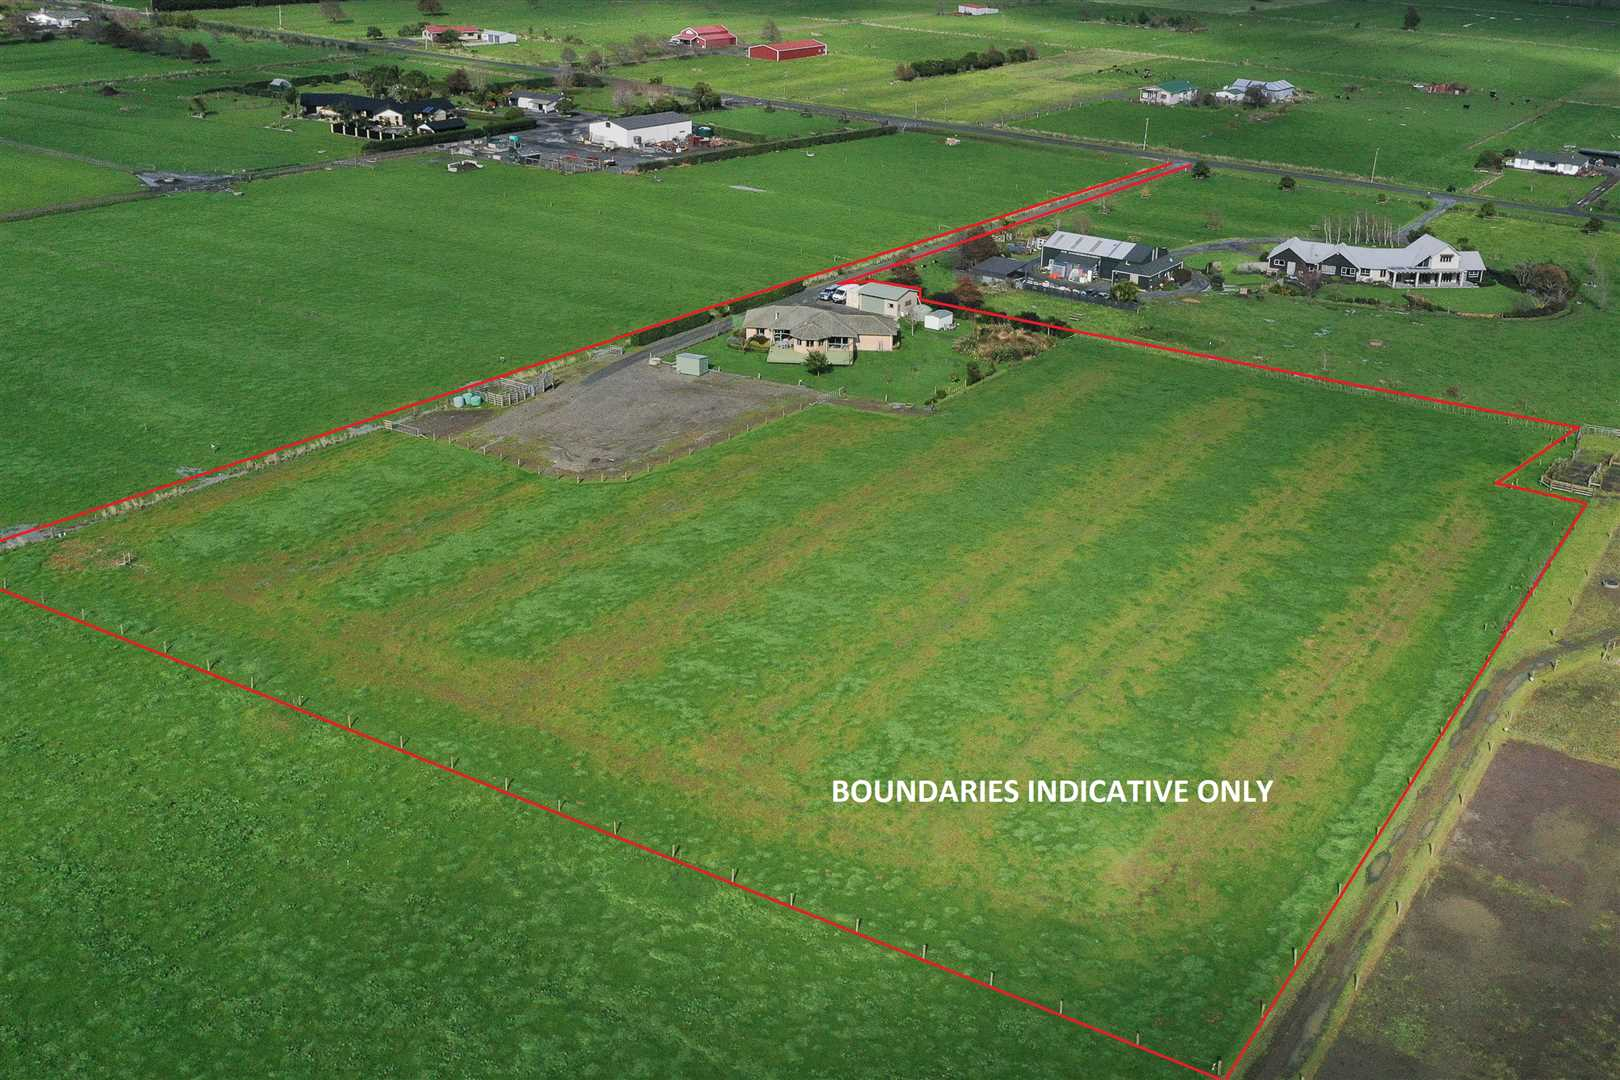 Boundary Aerial Photo - Indicative Only